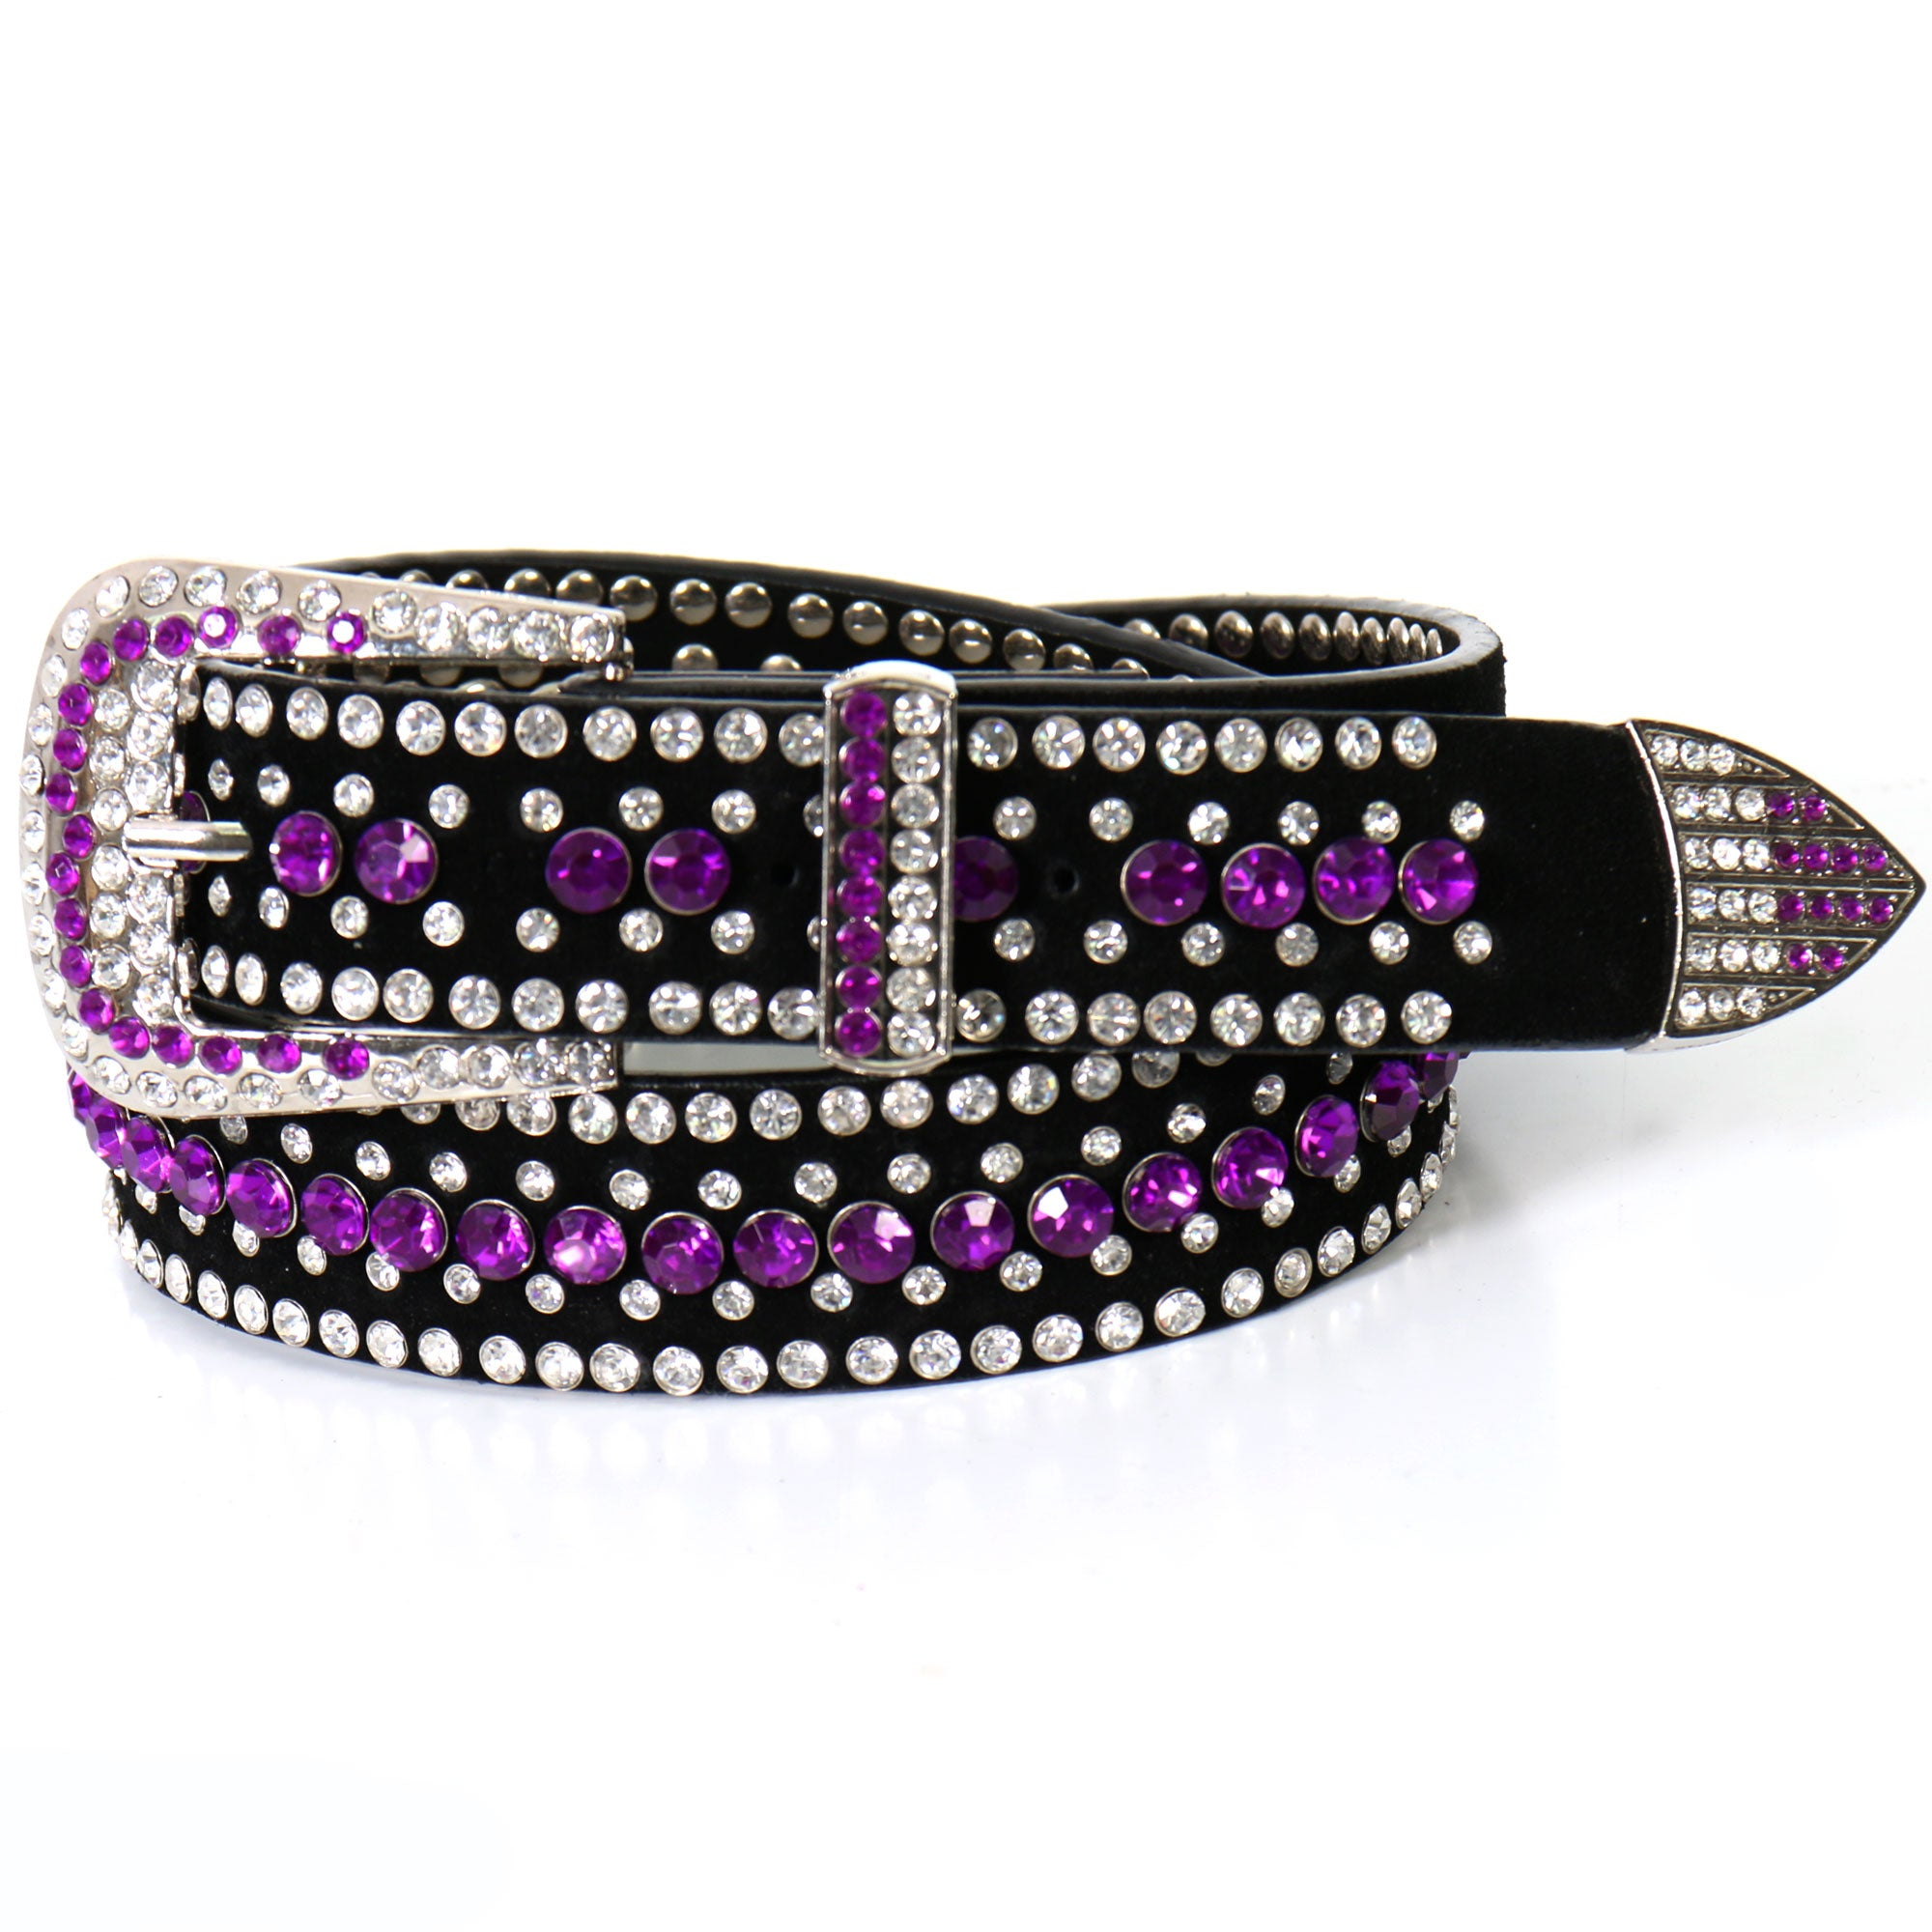 Hot Leathers Purple Rhinestone Ladies Leather Belt